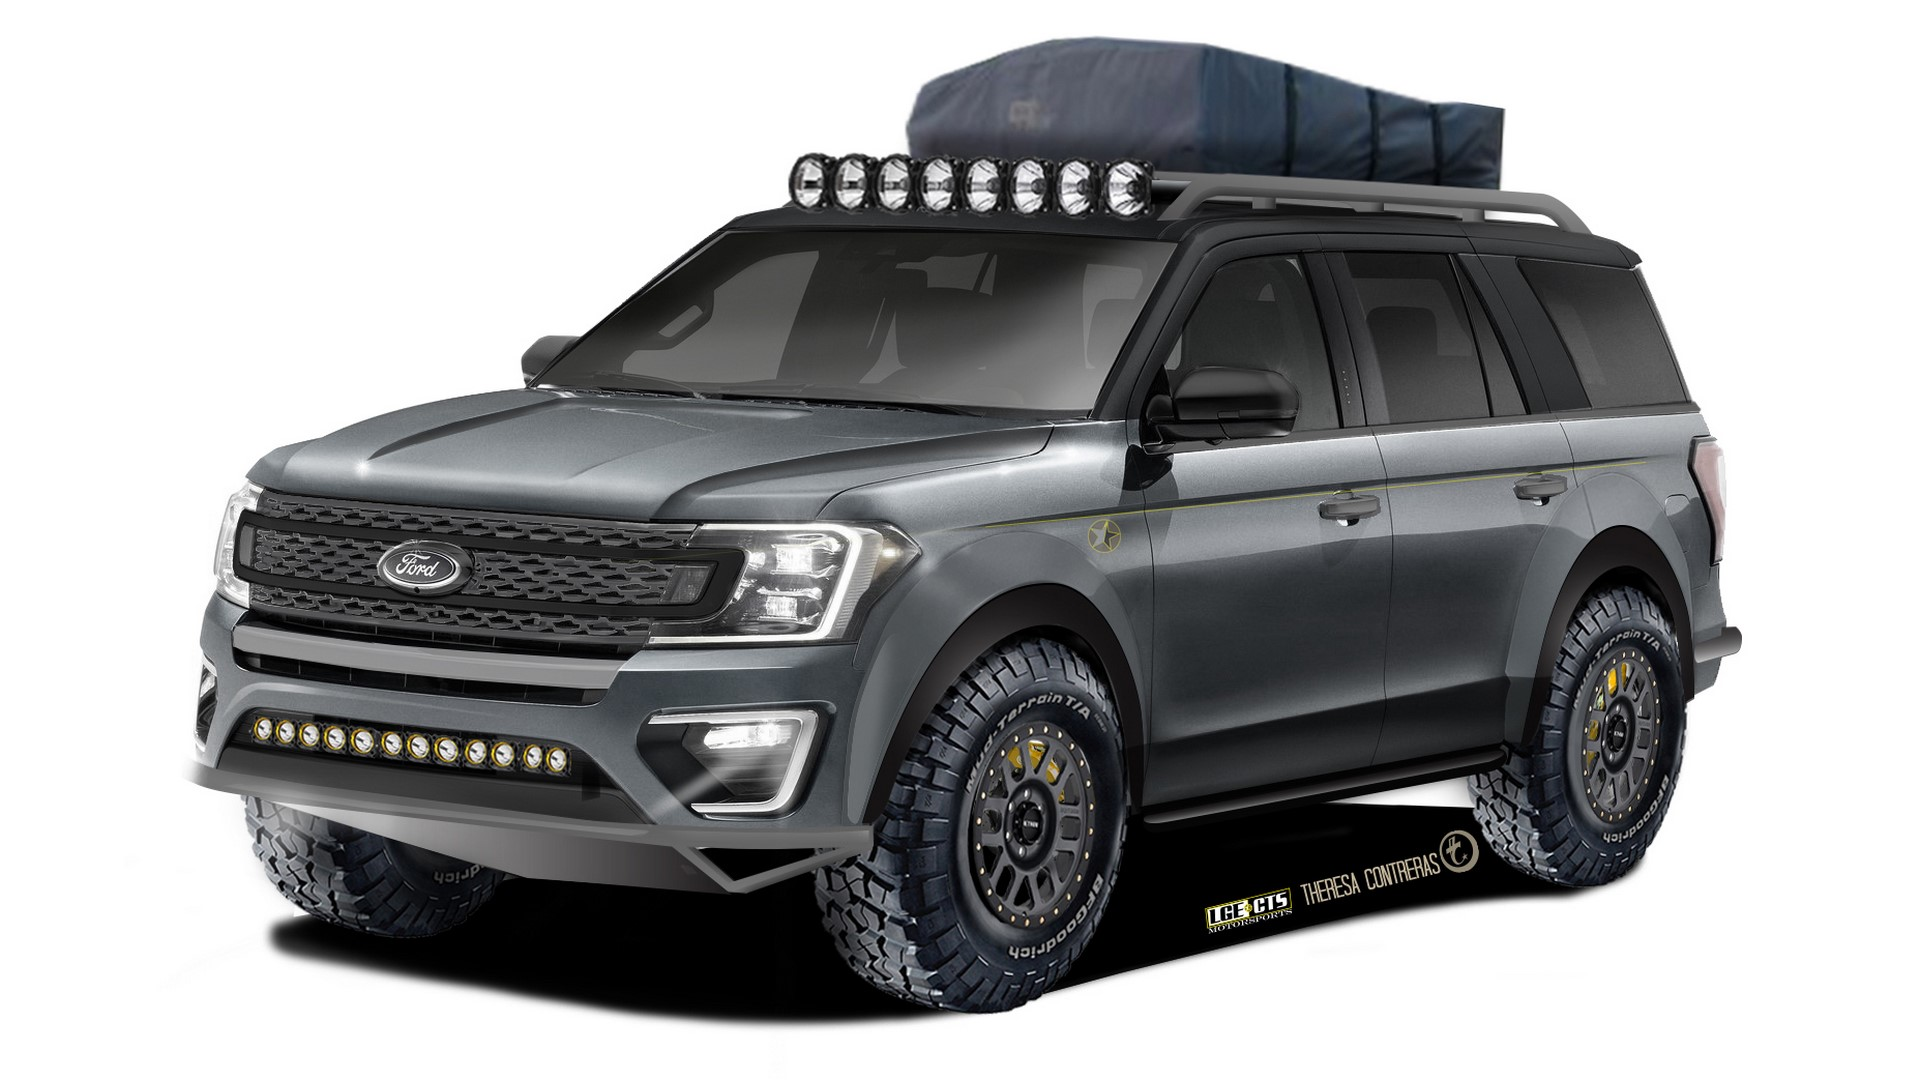 2018-expedition-lge-baja-forged-expedition-w-tent-dark-roof-1